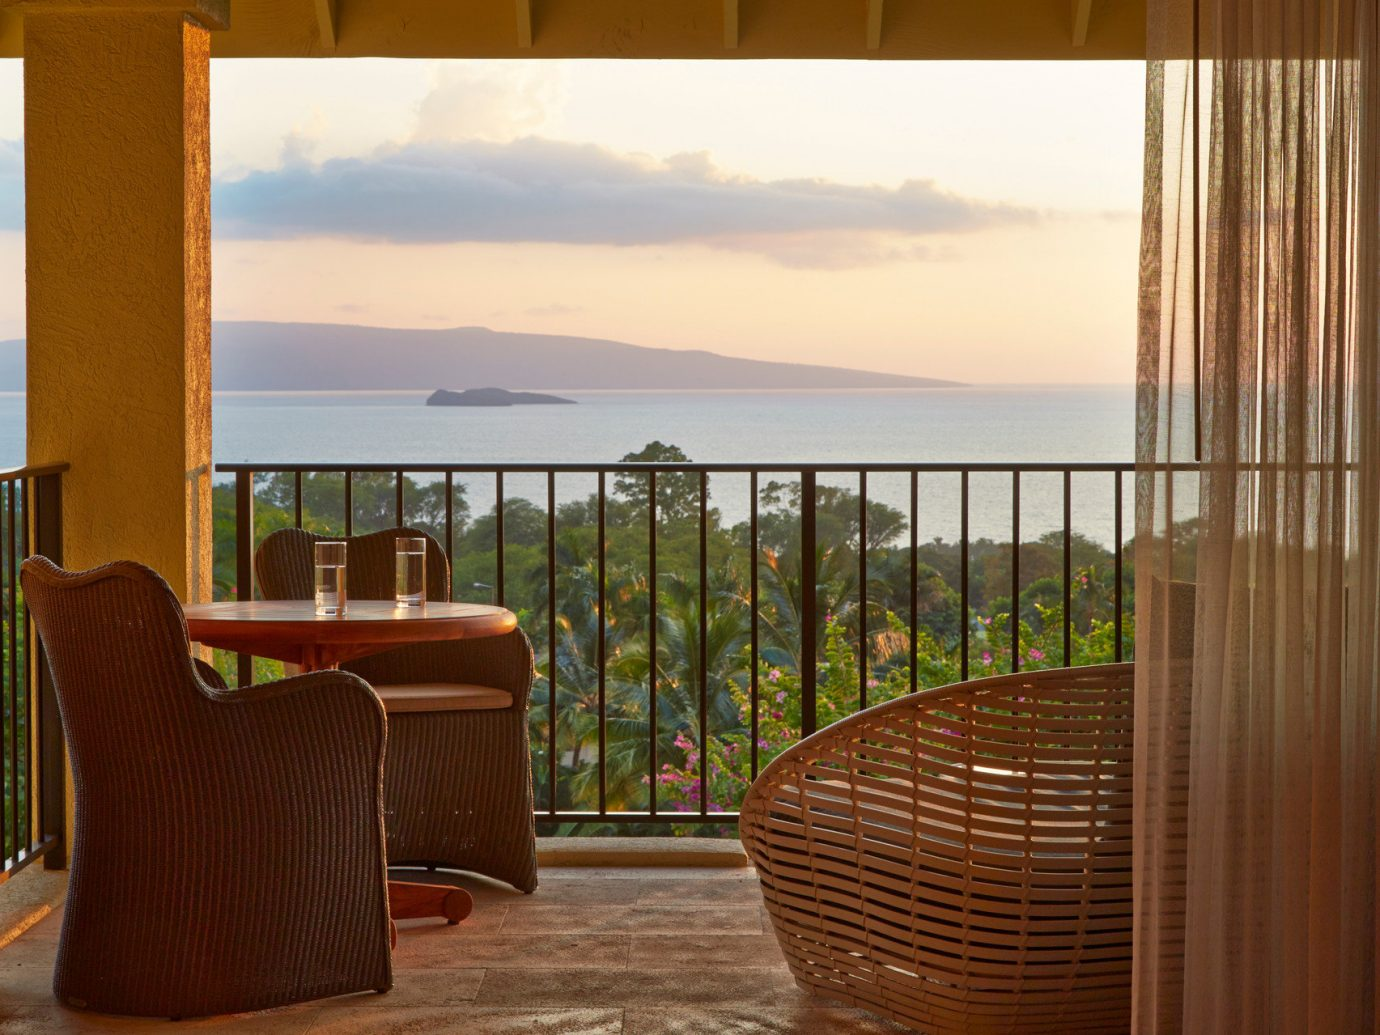 Beach Boutique Hotels Hotels Jetsetter Guides Luxury Travel Romance Trip Ideas indoor chair property room house estate home vacation interior design Resort wood real estate condominium cottage Villa window covering apartment window furniture